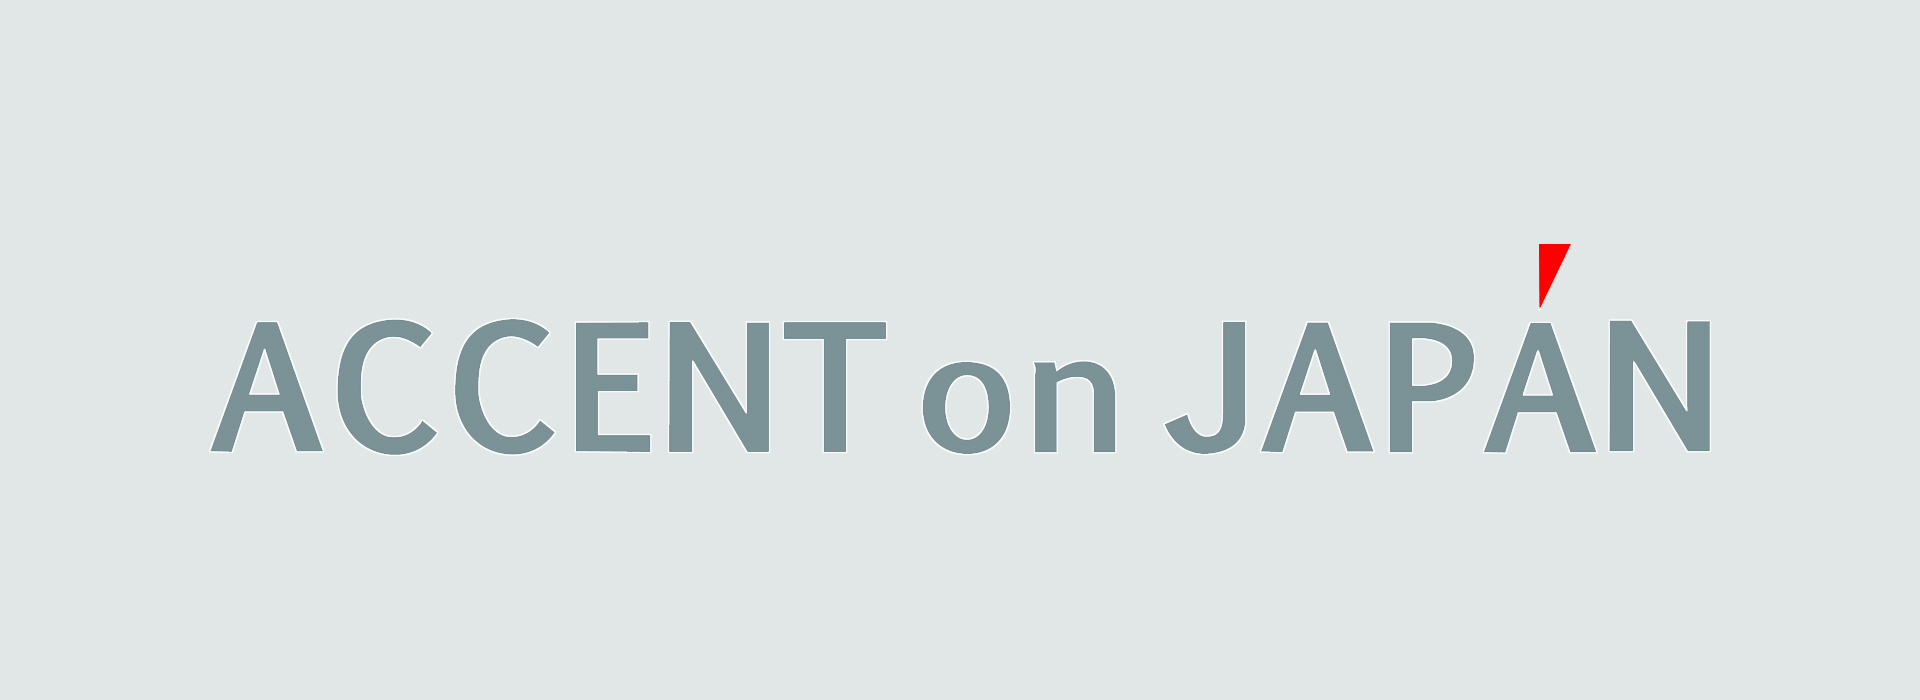 Accent on Japan